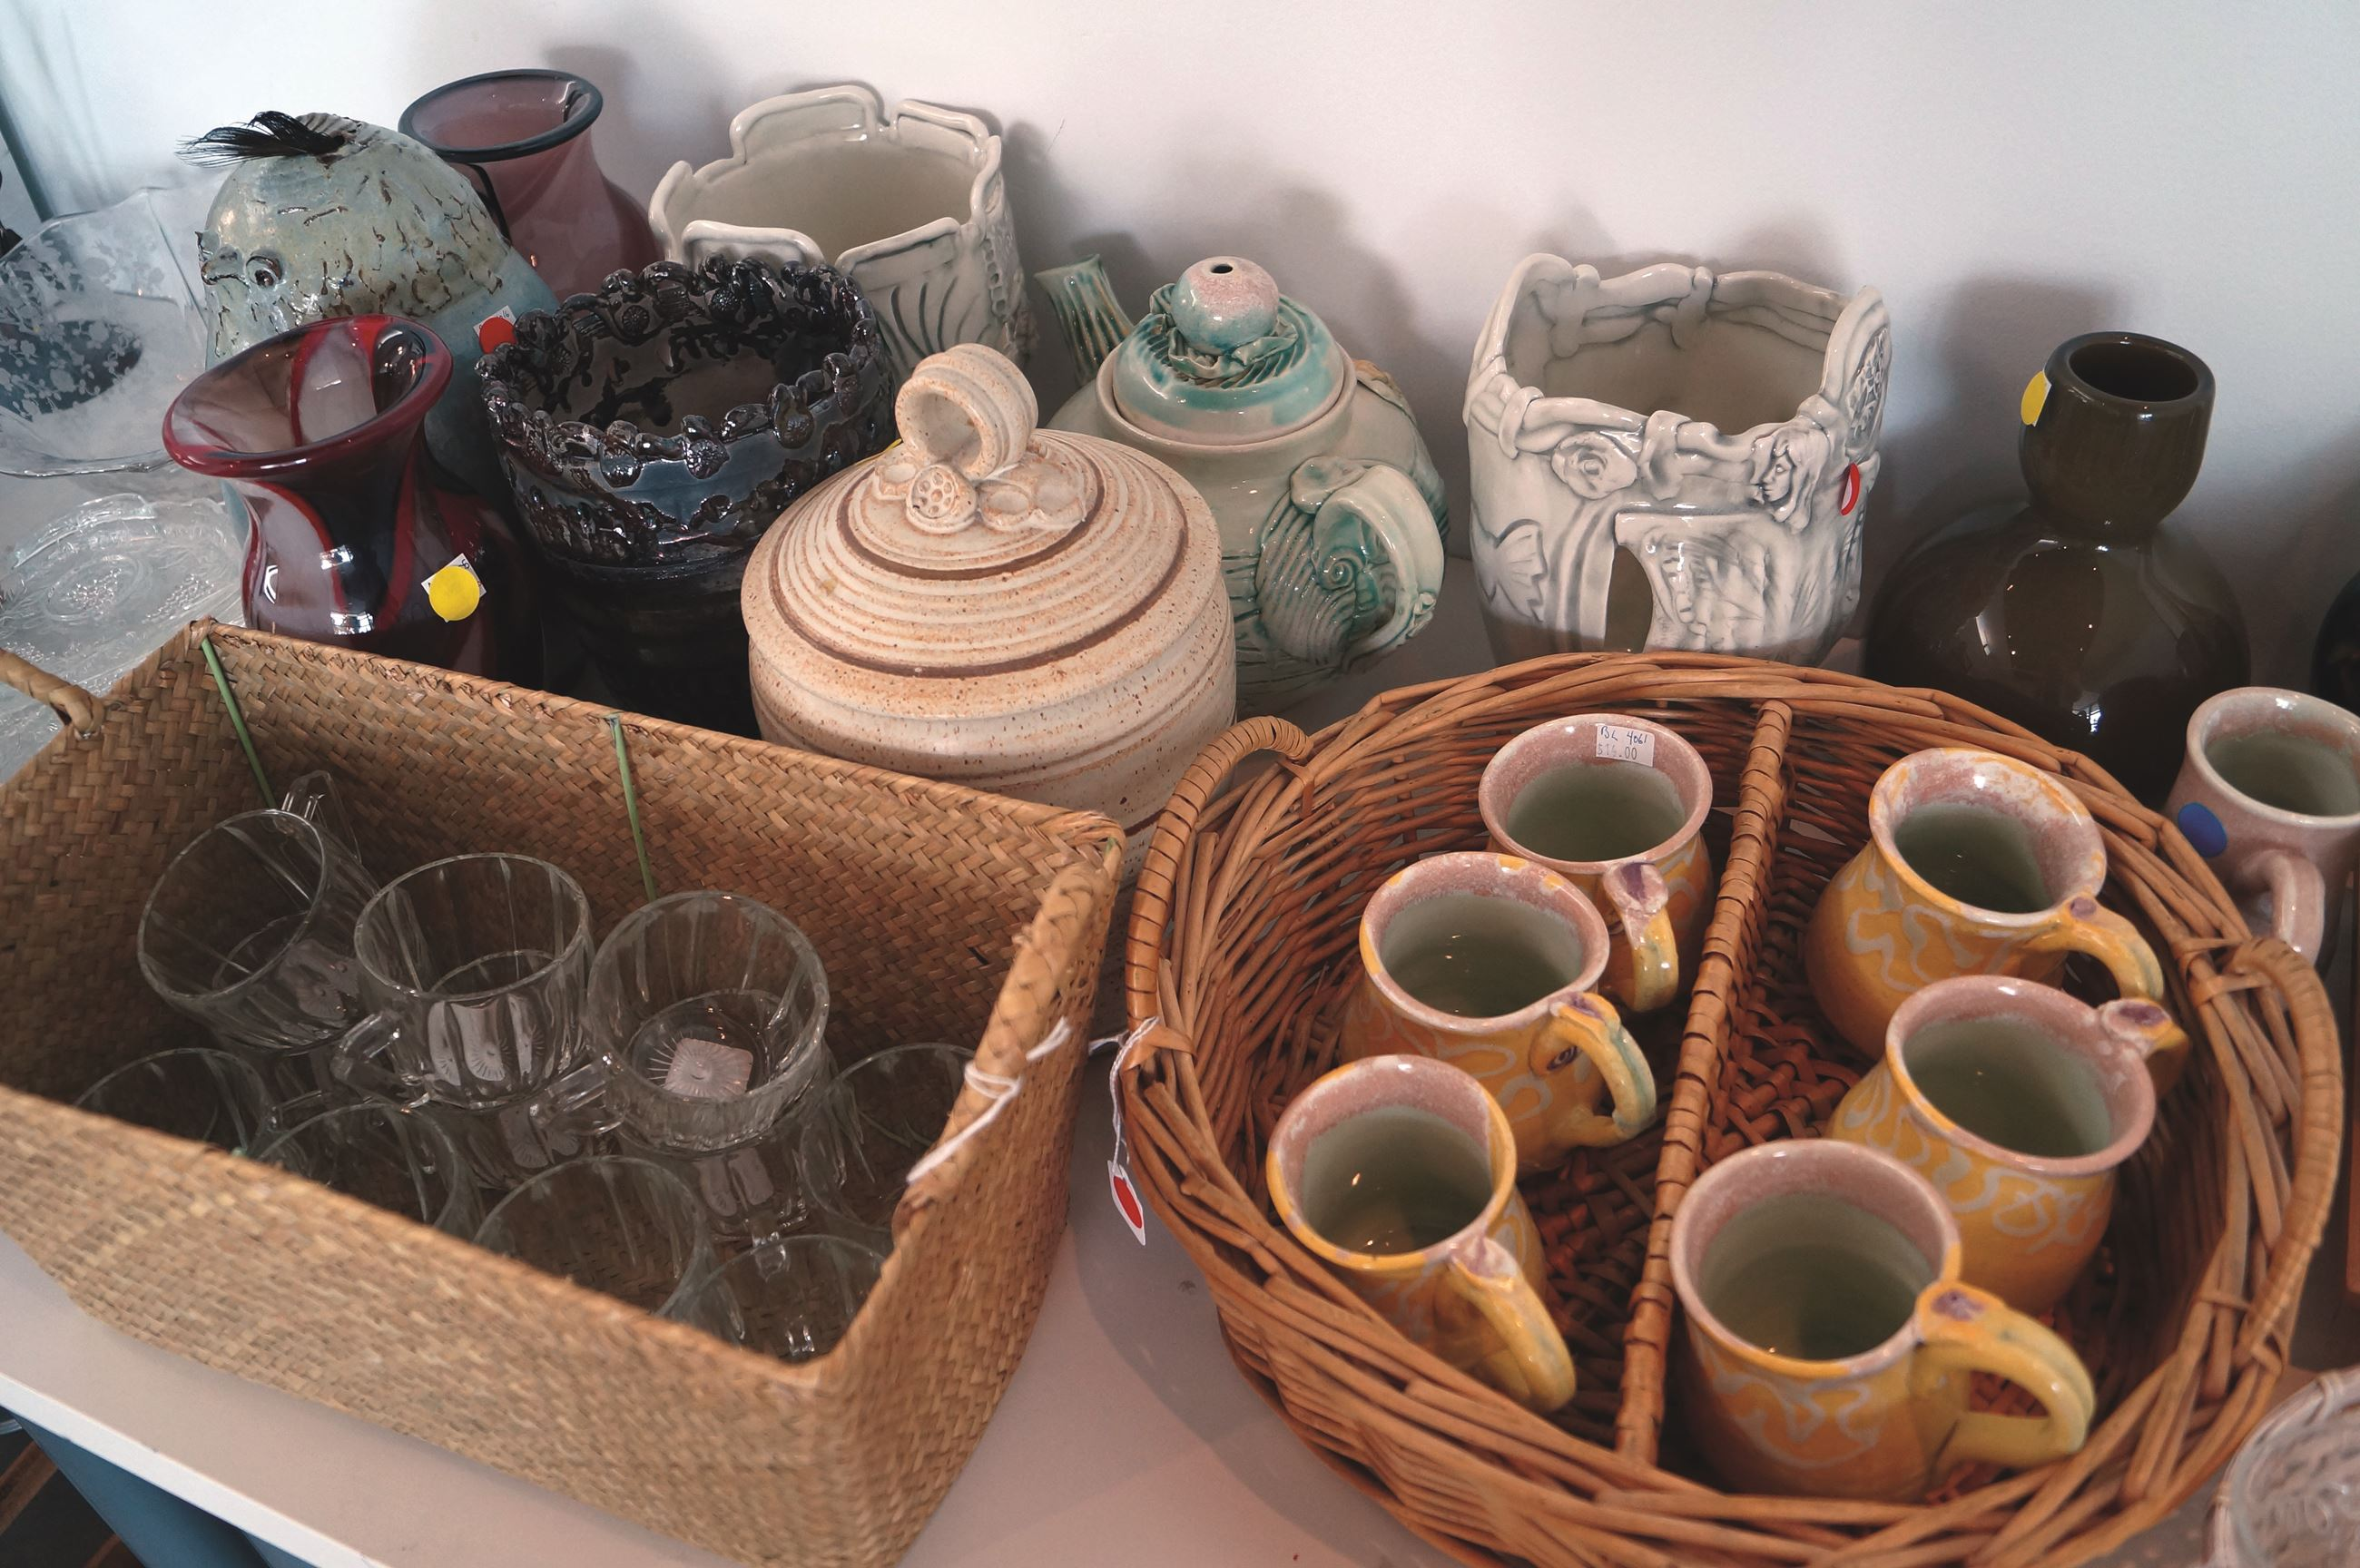 Cups, glasses, more pottery